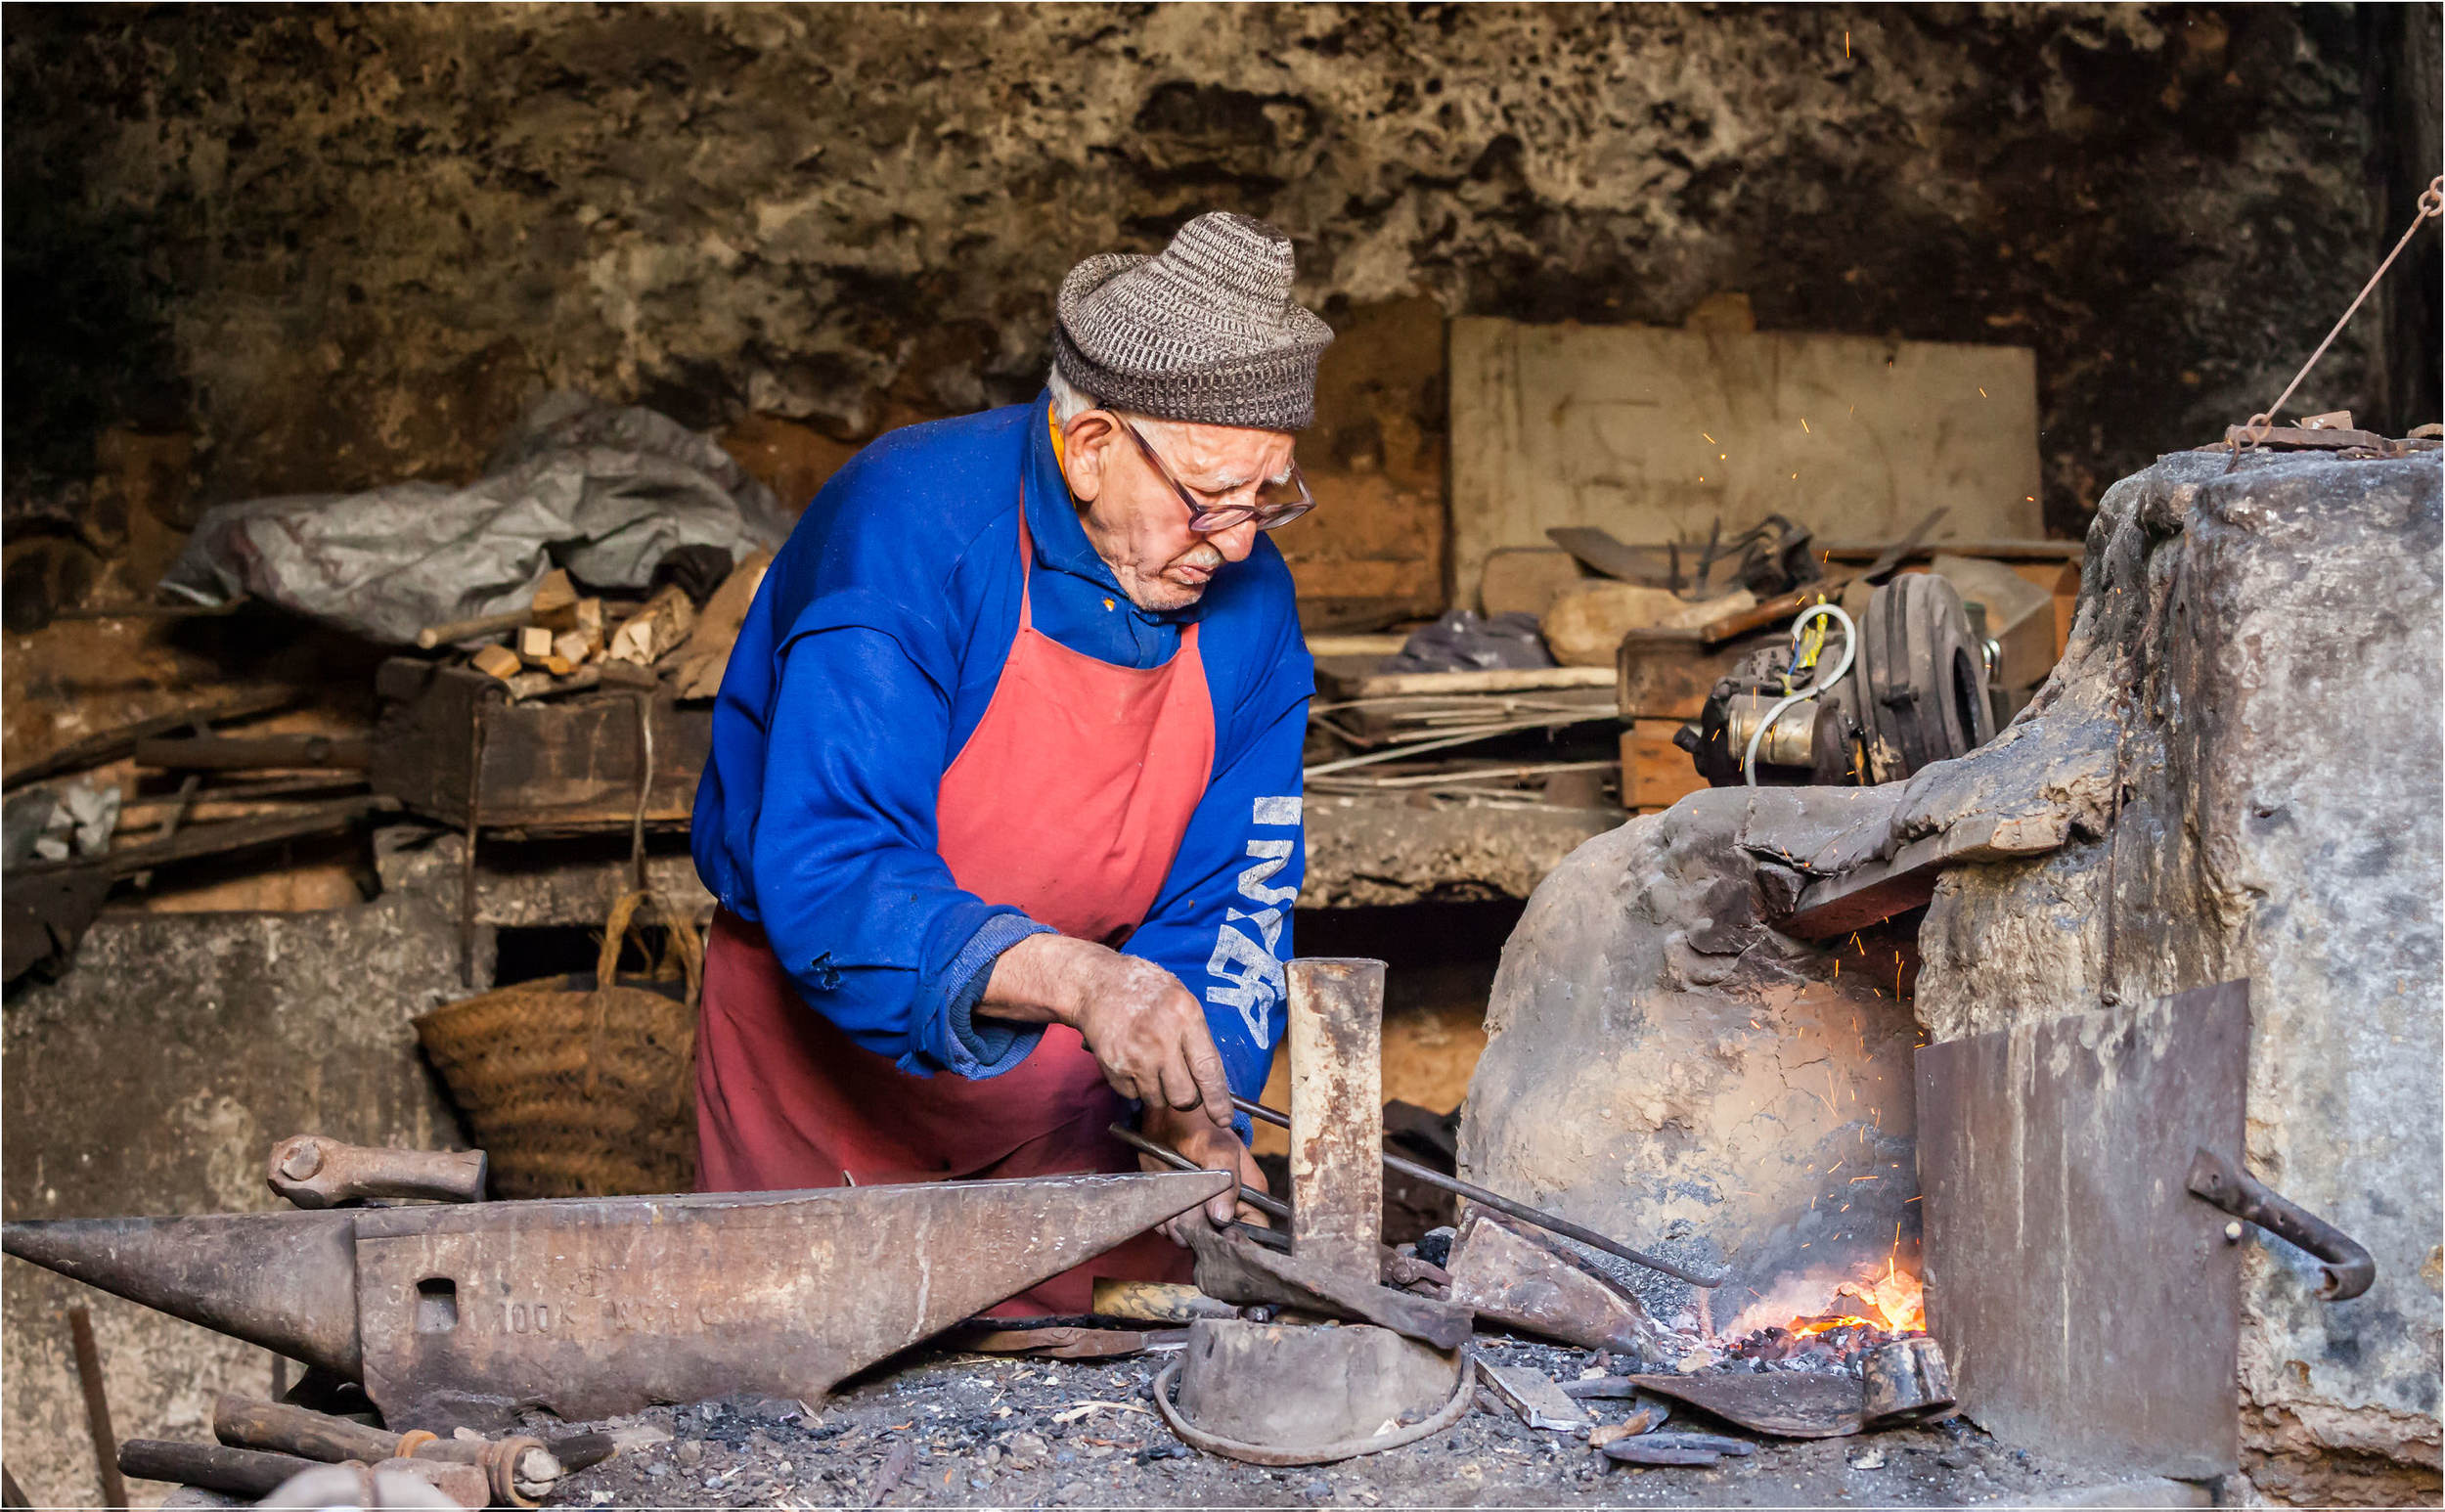 The Old Blacksmith